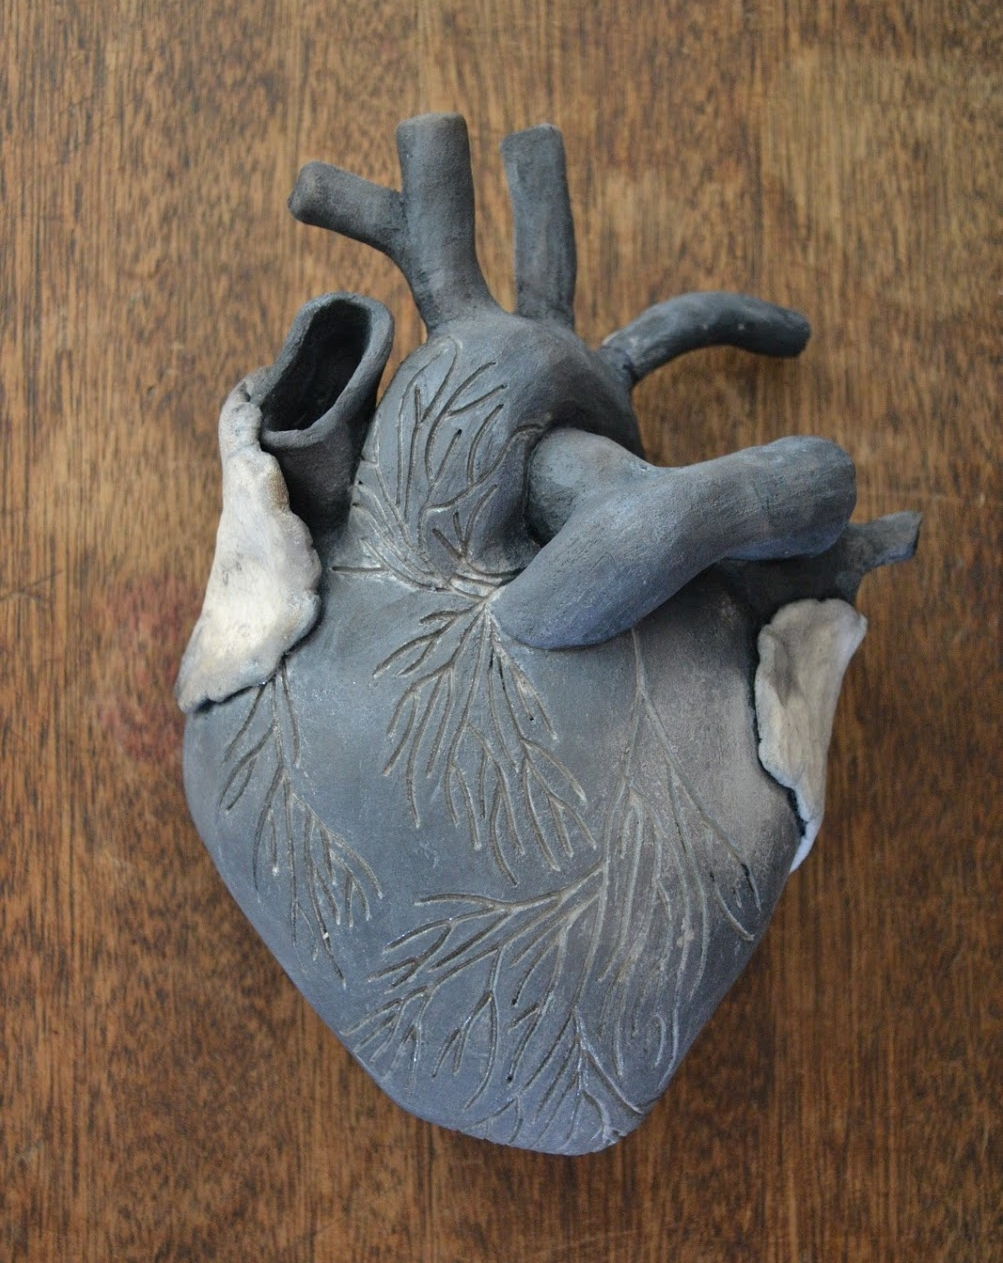 Hearty | Ceramic | 2015